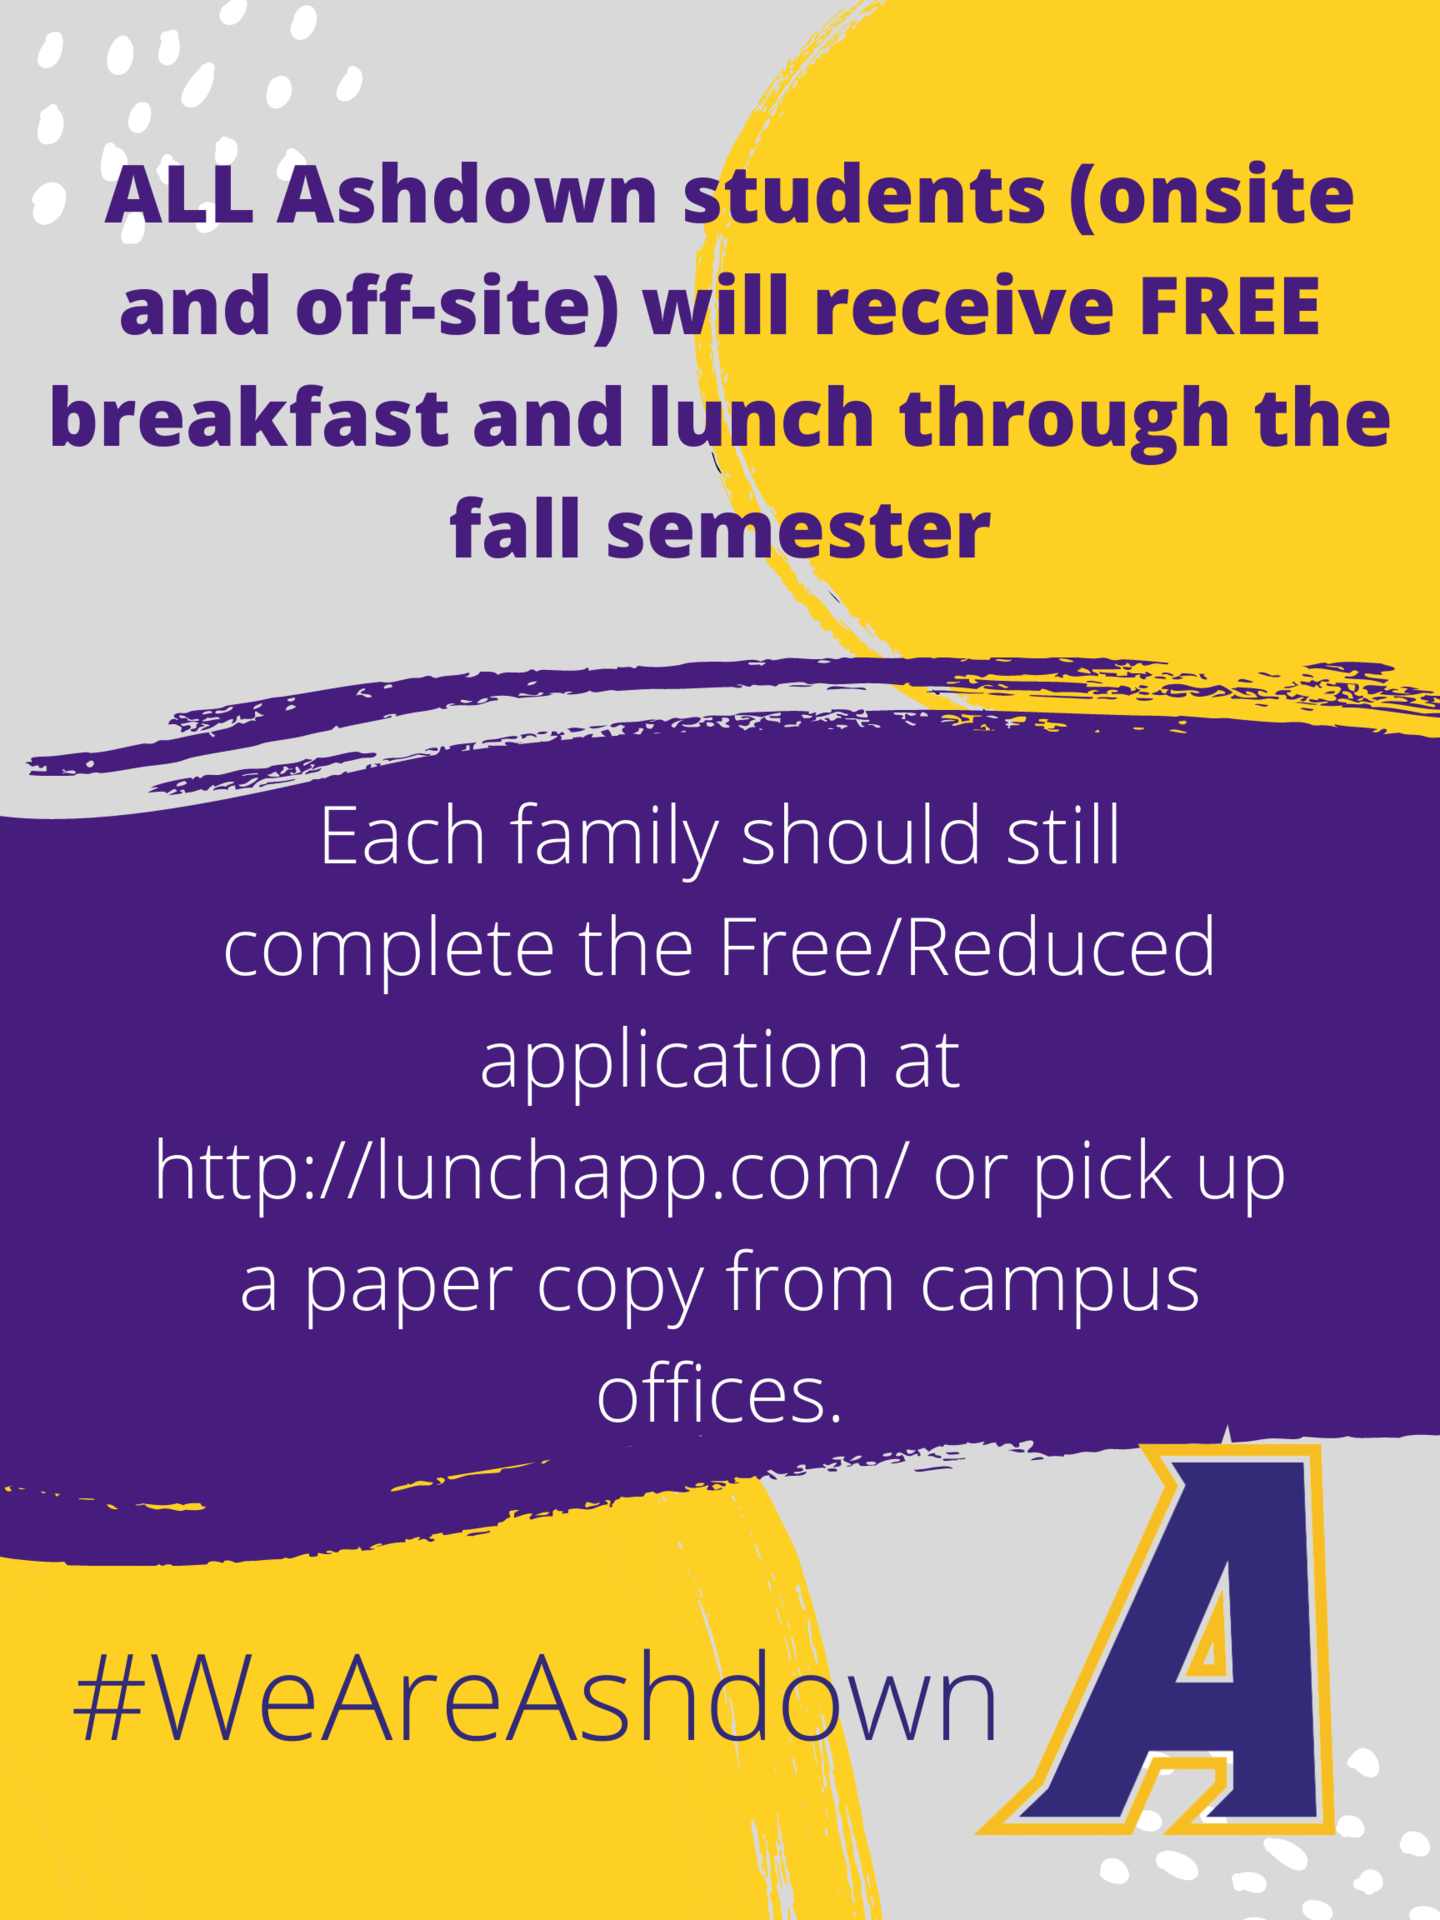 All students eat free for fall semester